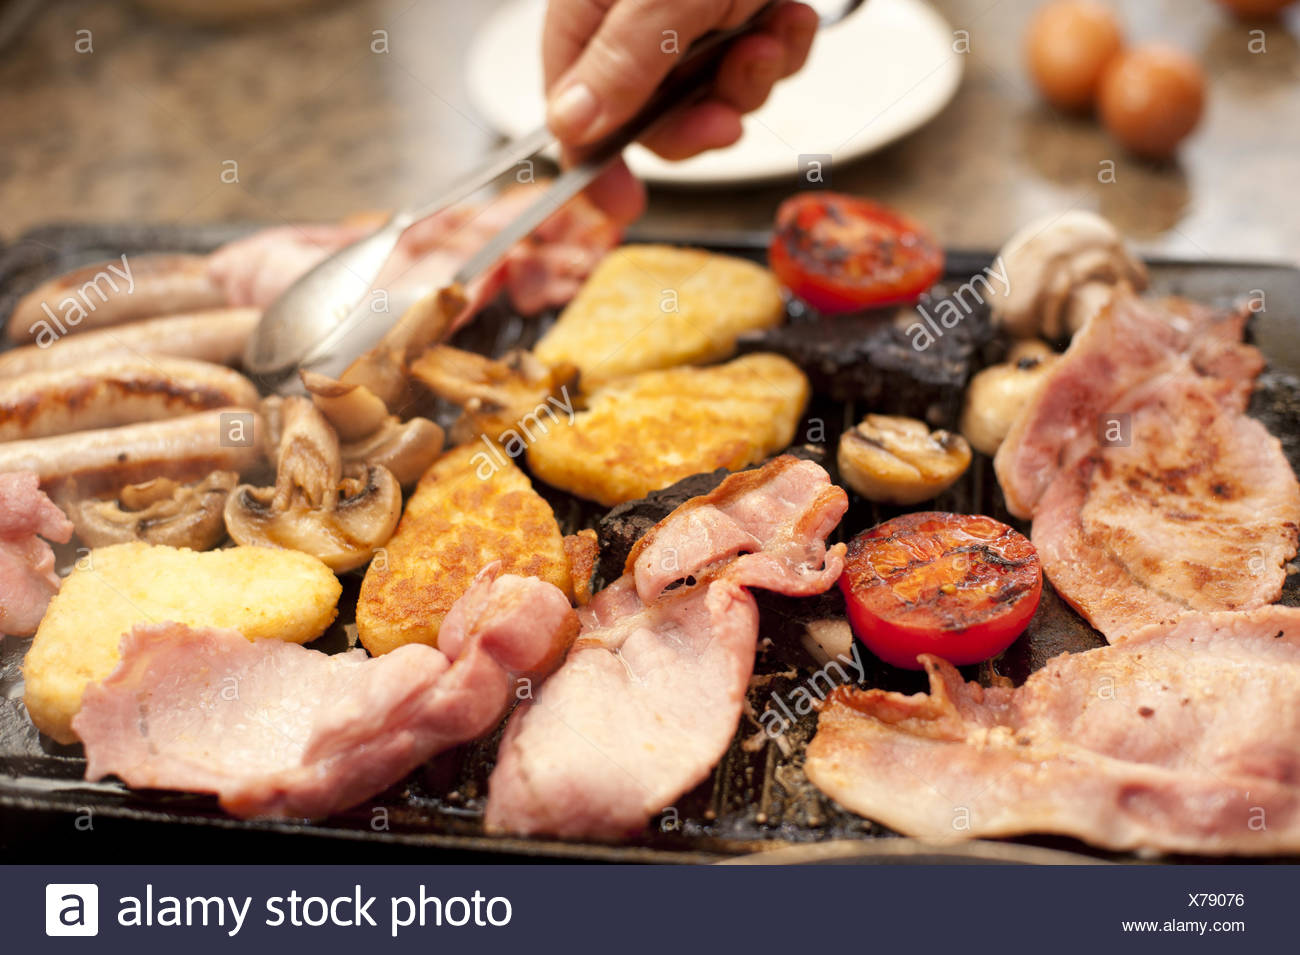 Man serving a hearty cooked breakfast - Stock Image